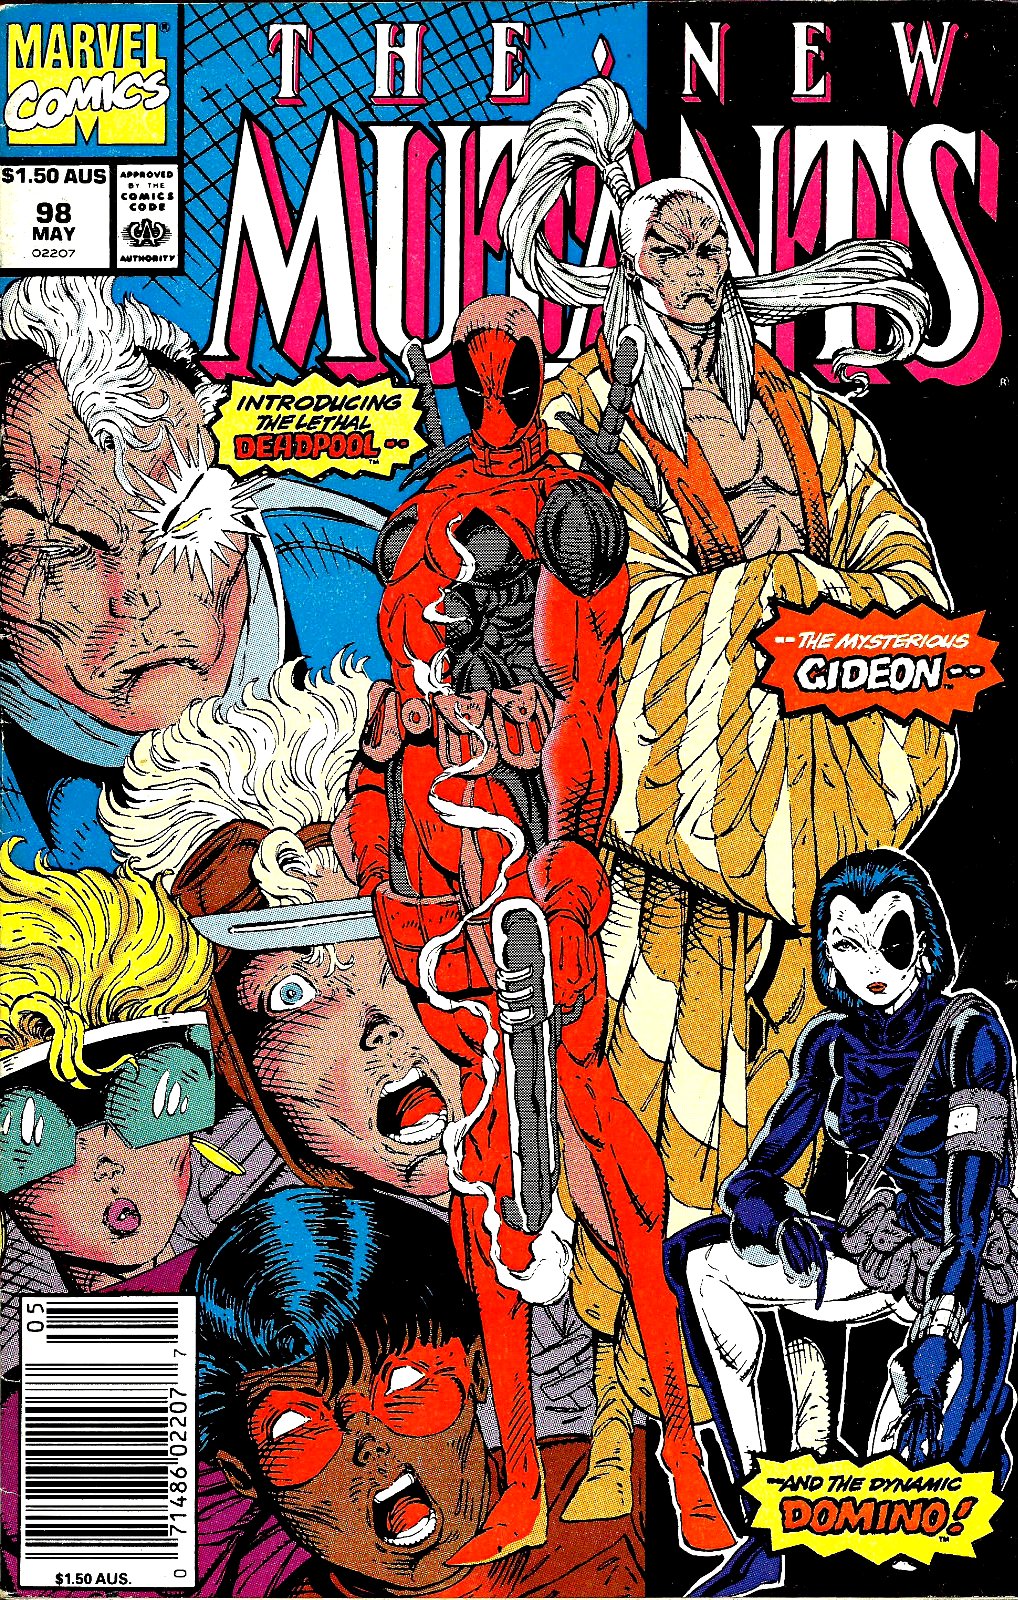 New Mutants #98 with